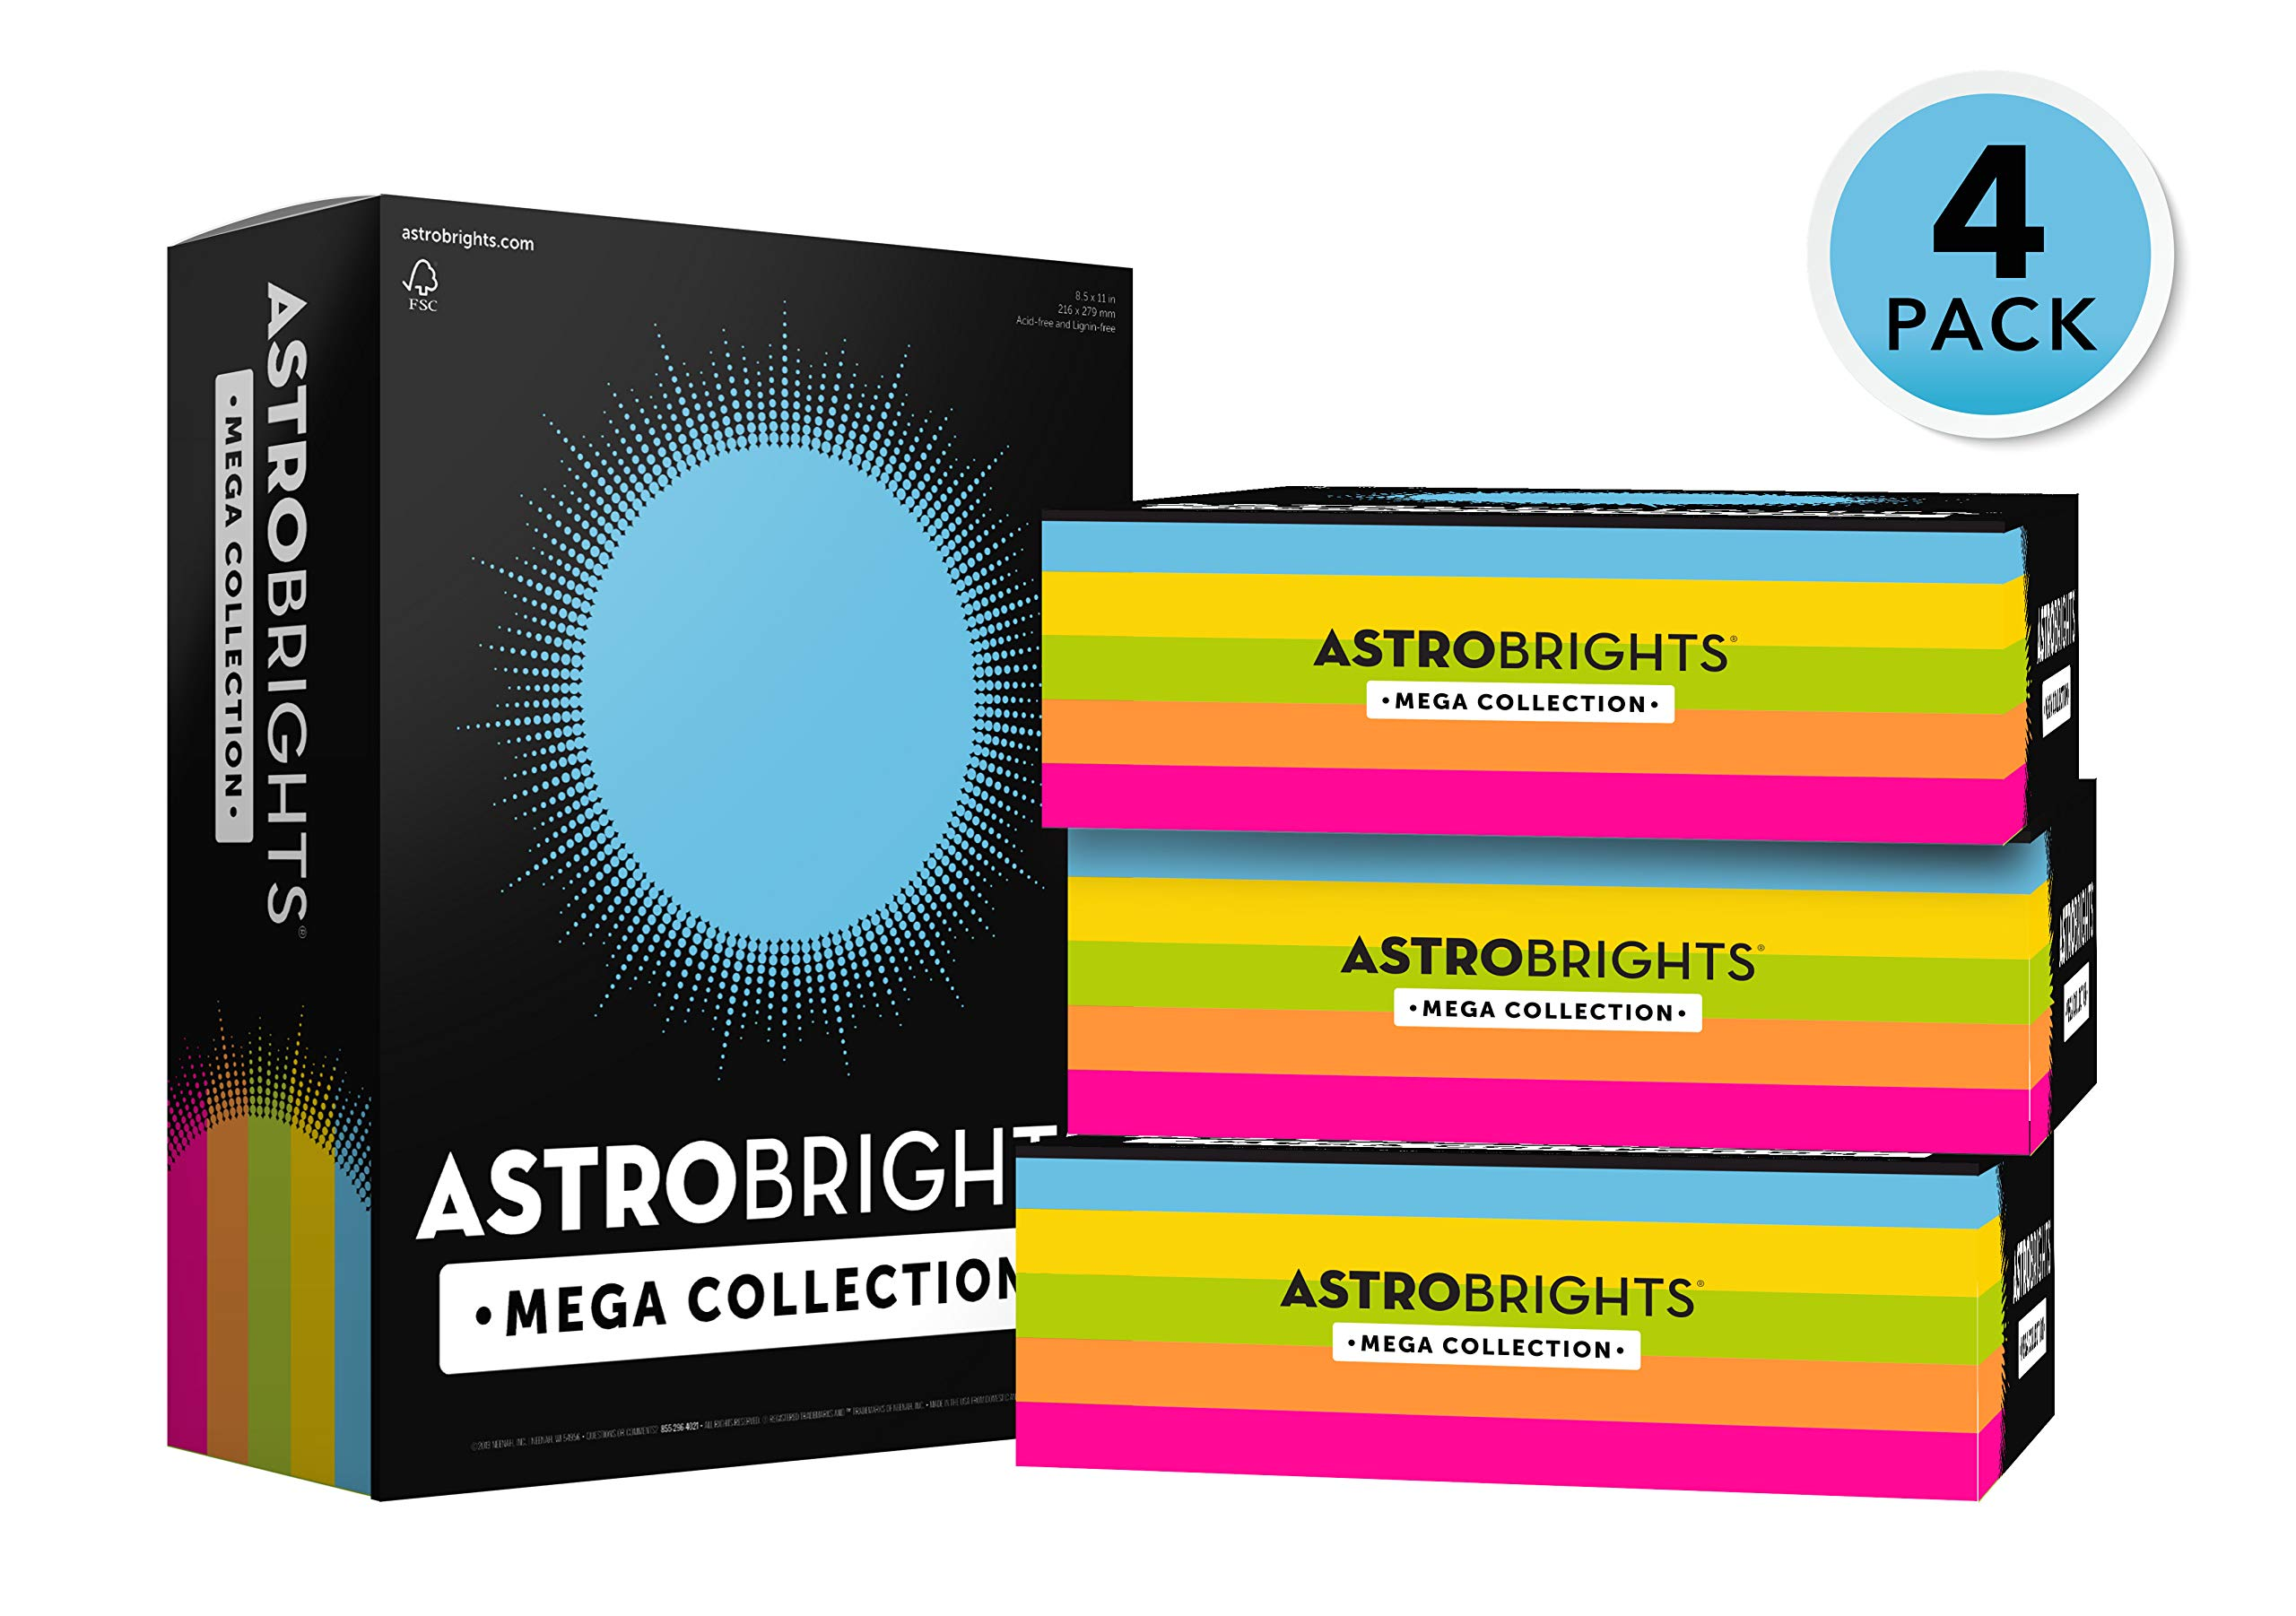 Astrobrights Mega Collection, 2500 Sheets,''Classic'' 5-Color Assortment, Colored Paper, 24 lb/89 gsm, 8 ½ x 11 - MORE SHEETS! (91623-02) by Astrobrights